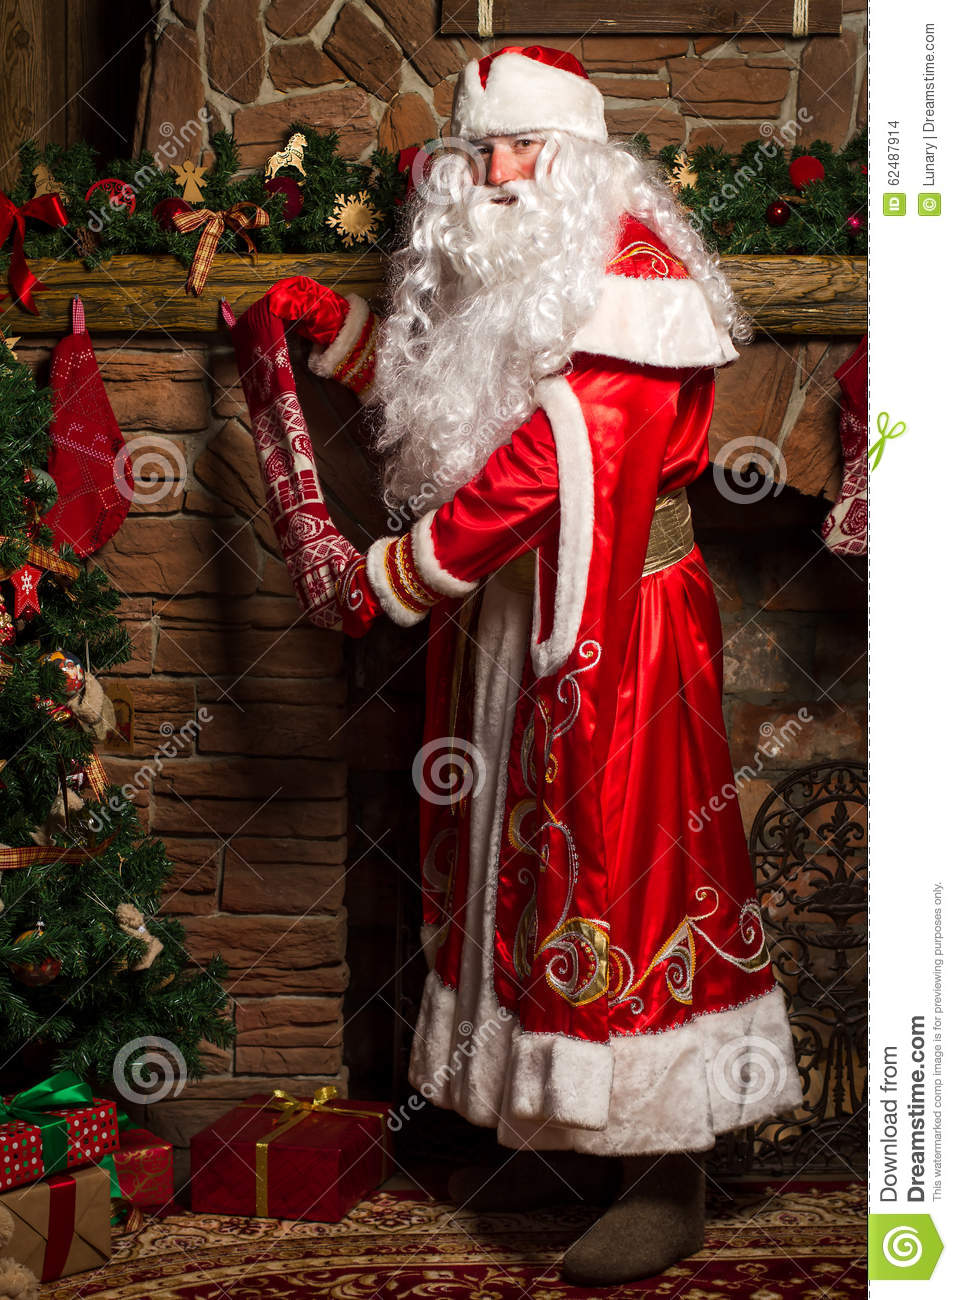 Santa Claus Putting Gifts In Christmas Stockings At ...